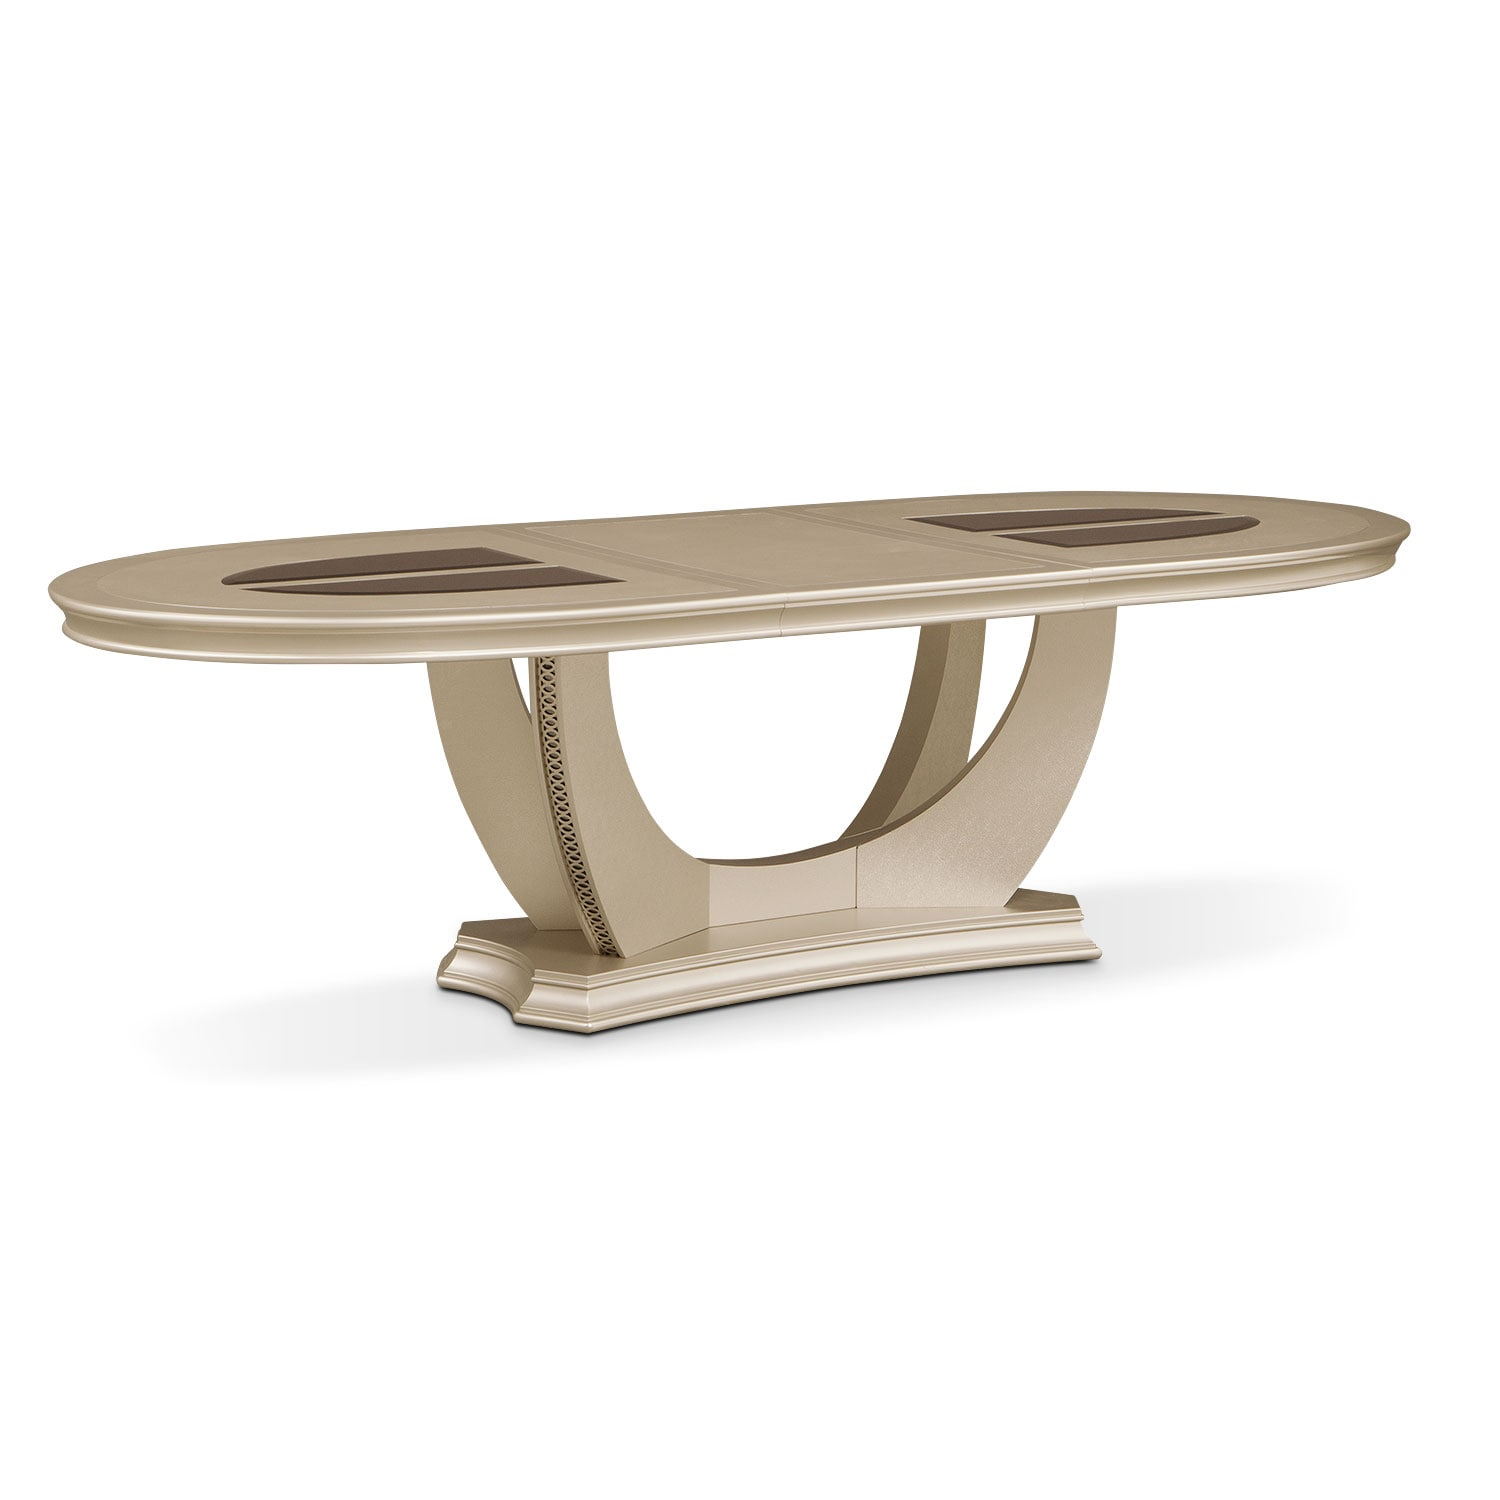 [Allegro Oval Dining Table]